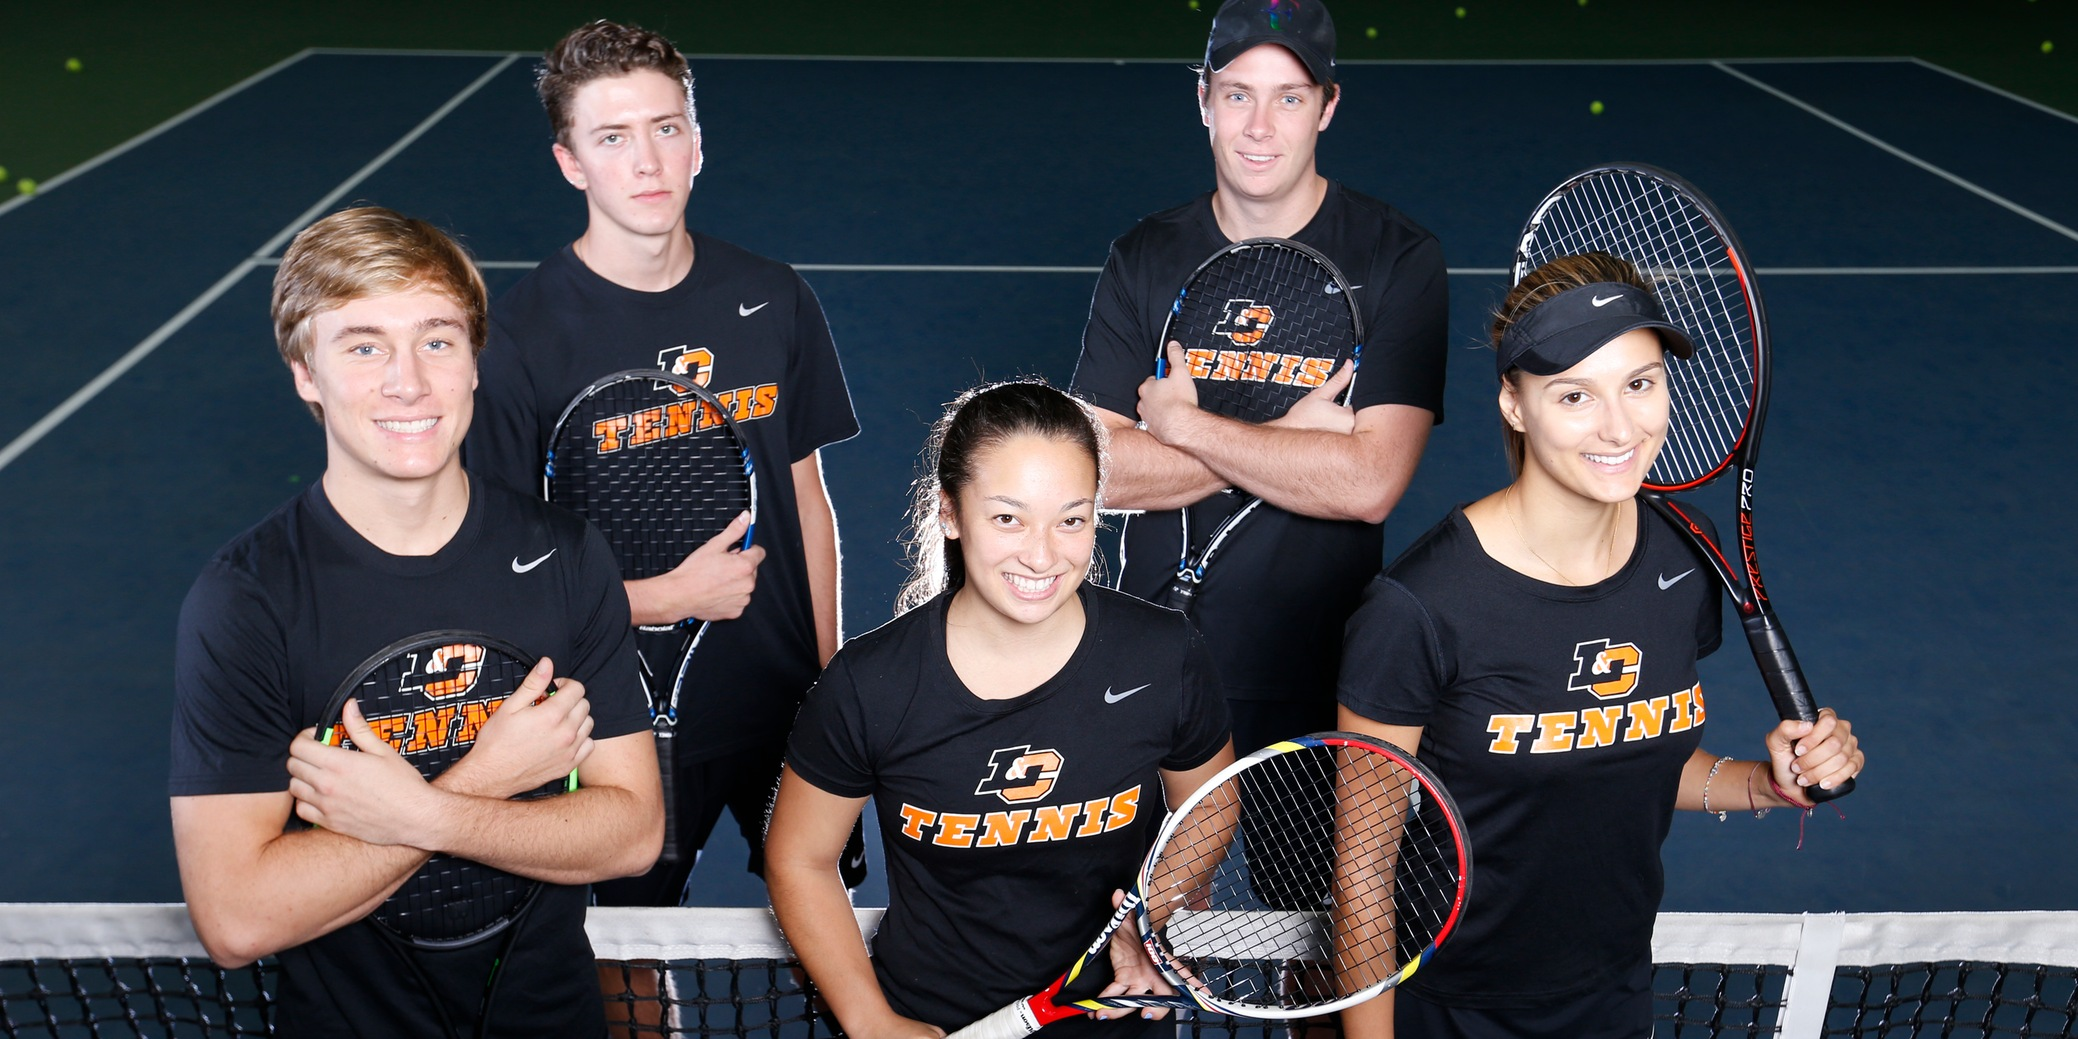 2018 Spring Preview: Tennis